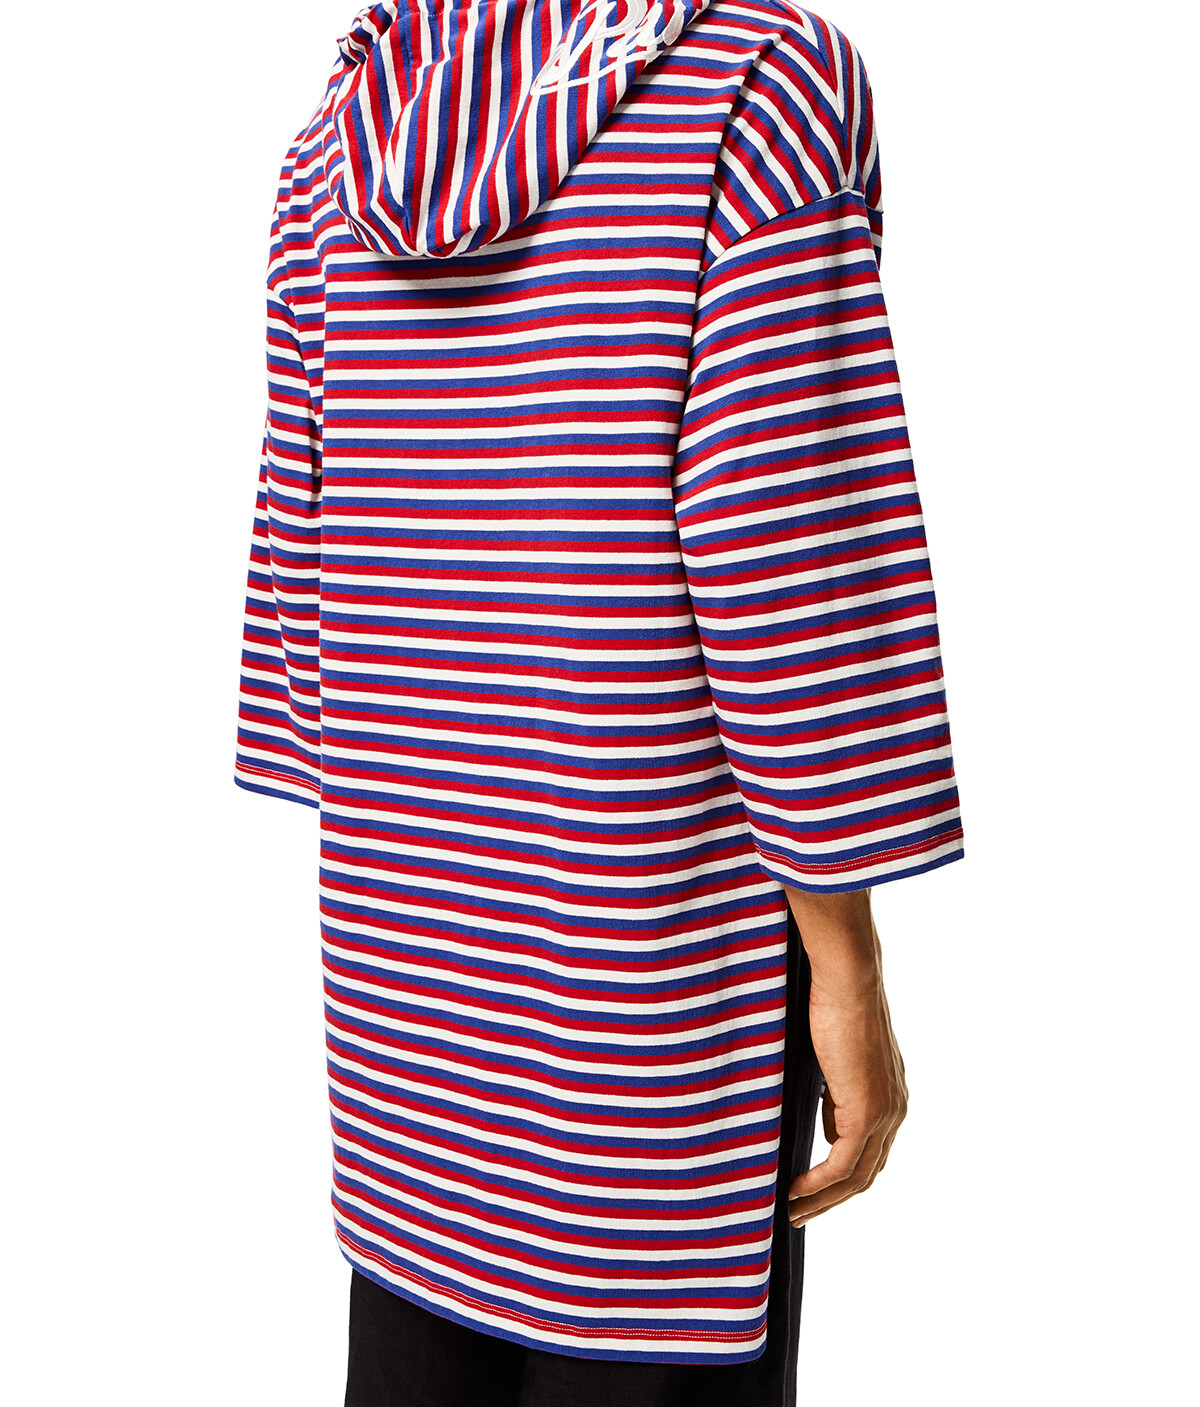 LOEWE Hooded Tunic In Striped Polyamide Red/White/Blue front